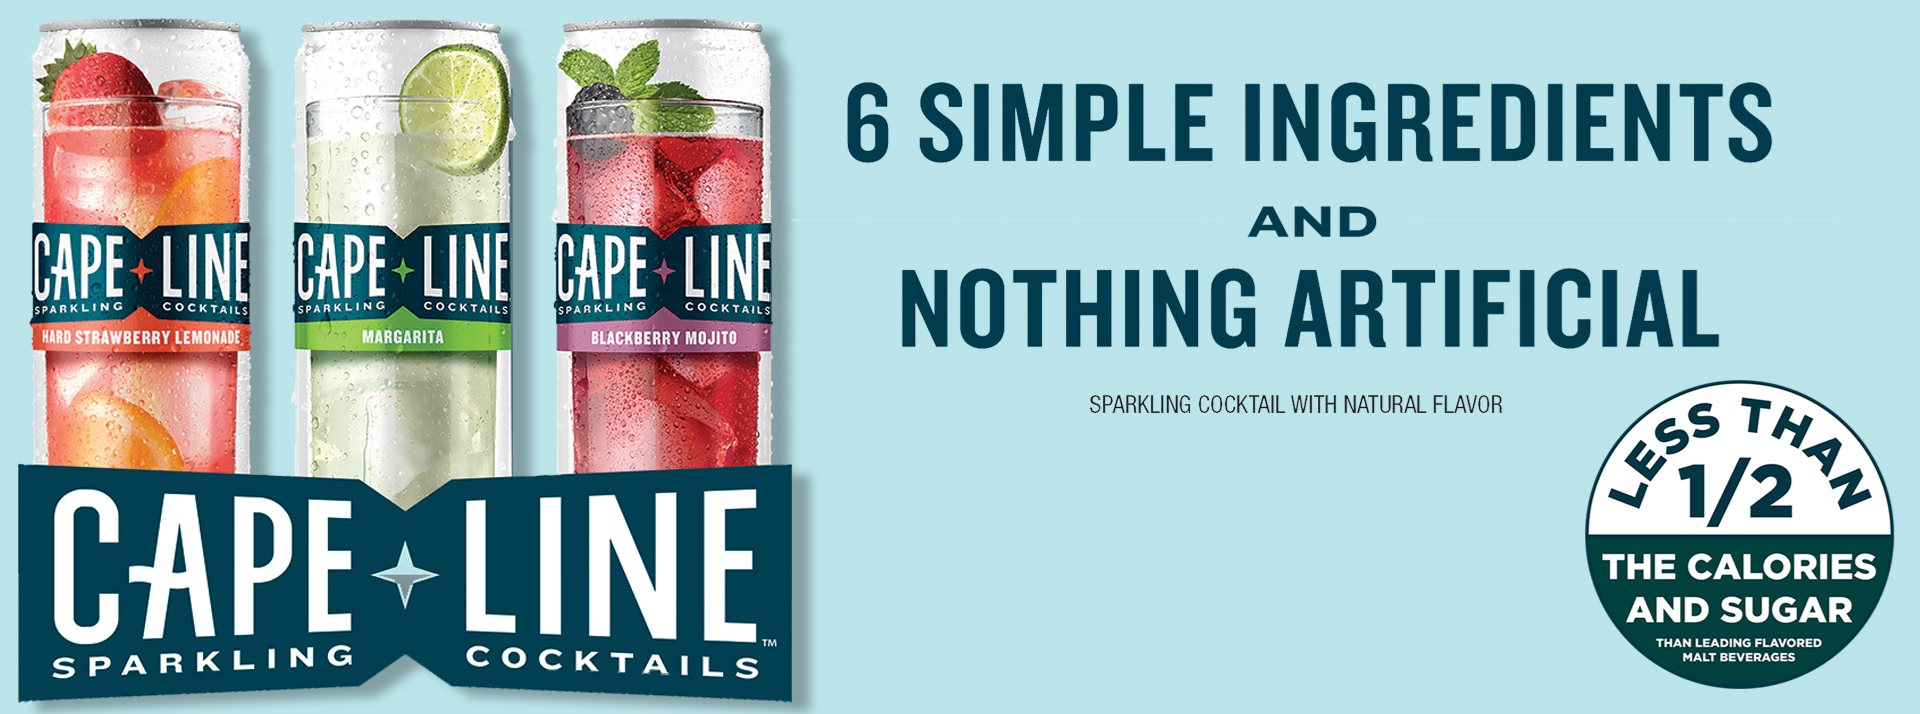 Cape Line Sparkling Cocktails